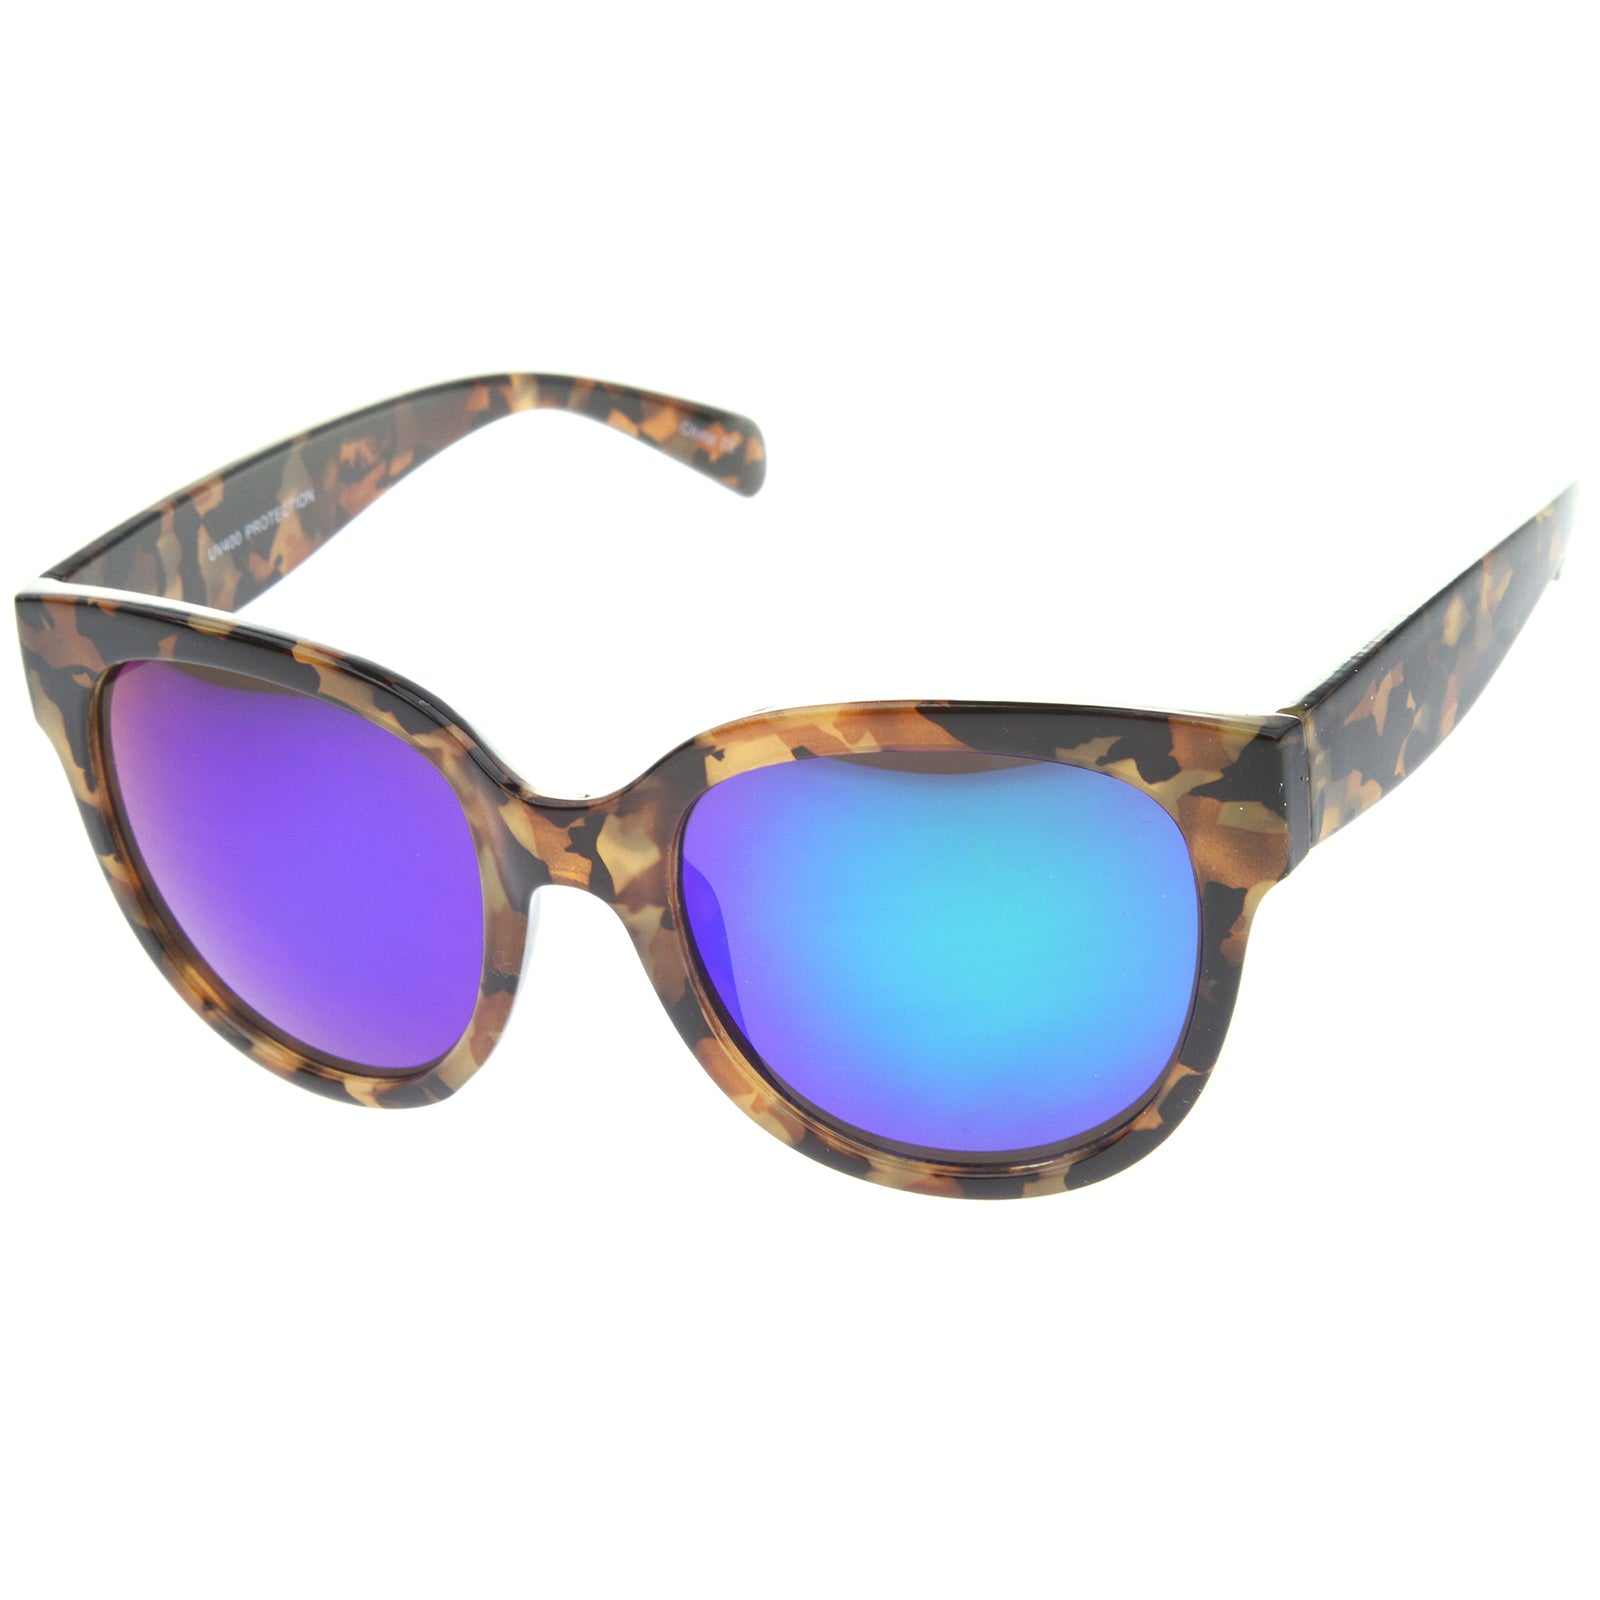 Womens Cat Eye Sunglasses With UV400 Protected Mirrored Lens - sunglass.la - 10